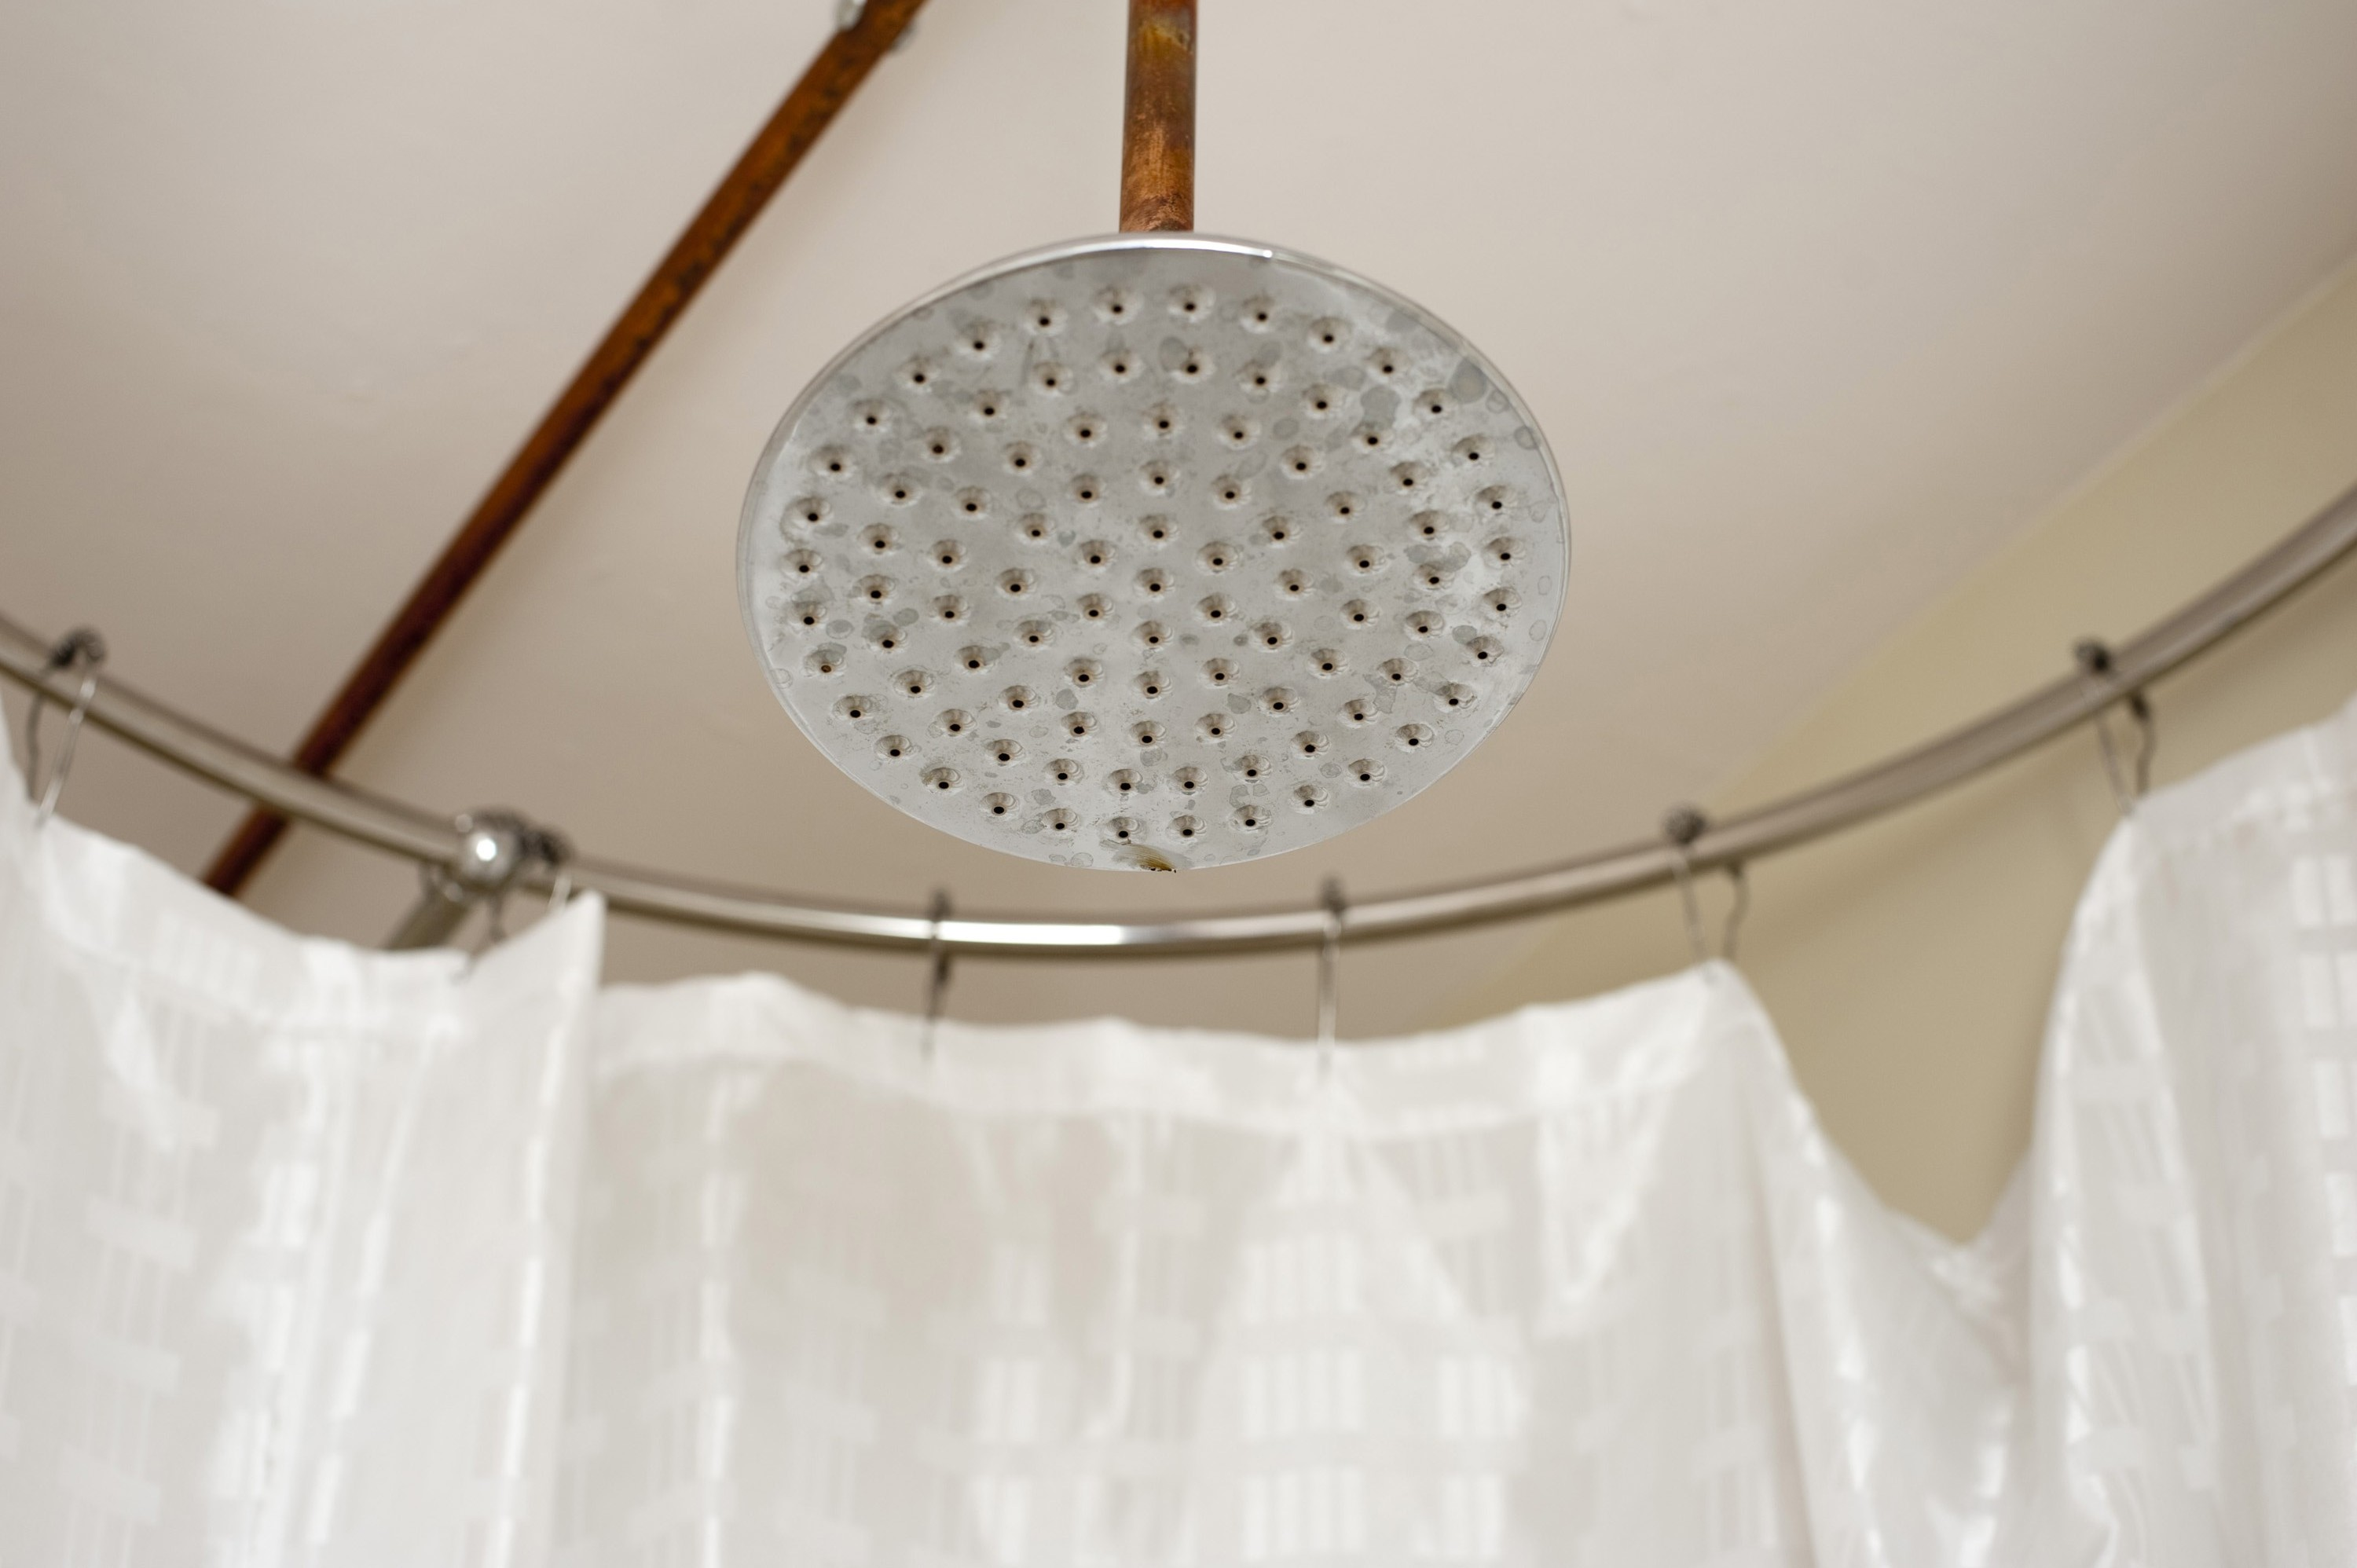 Free image of classic shower head